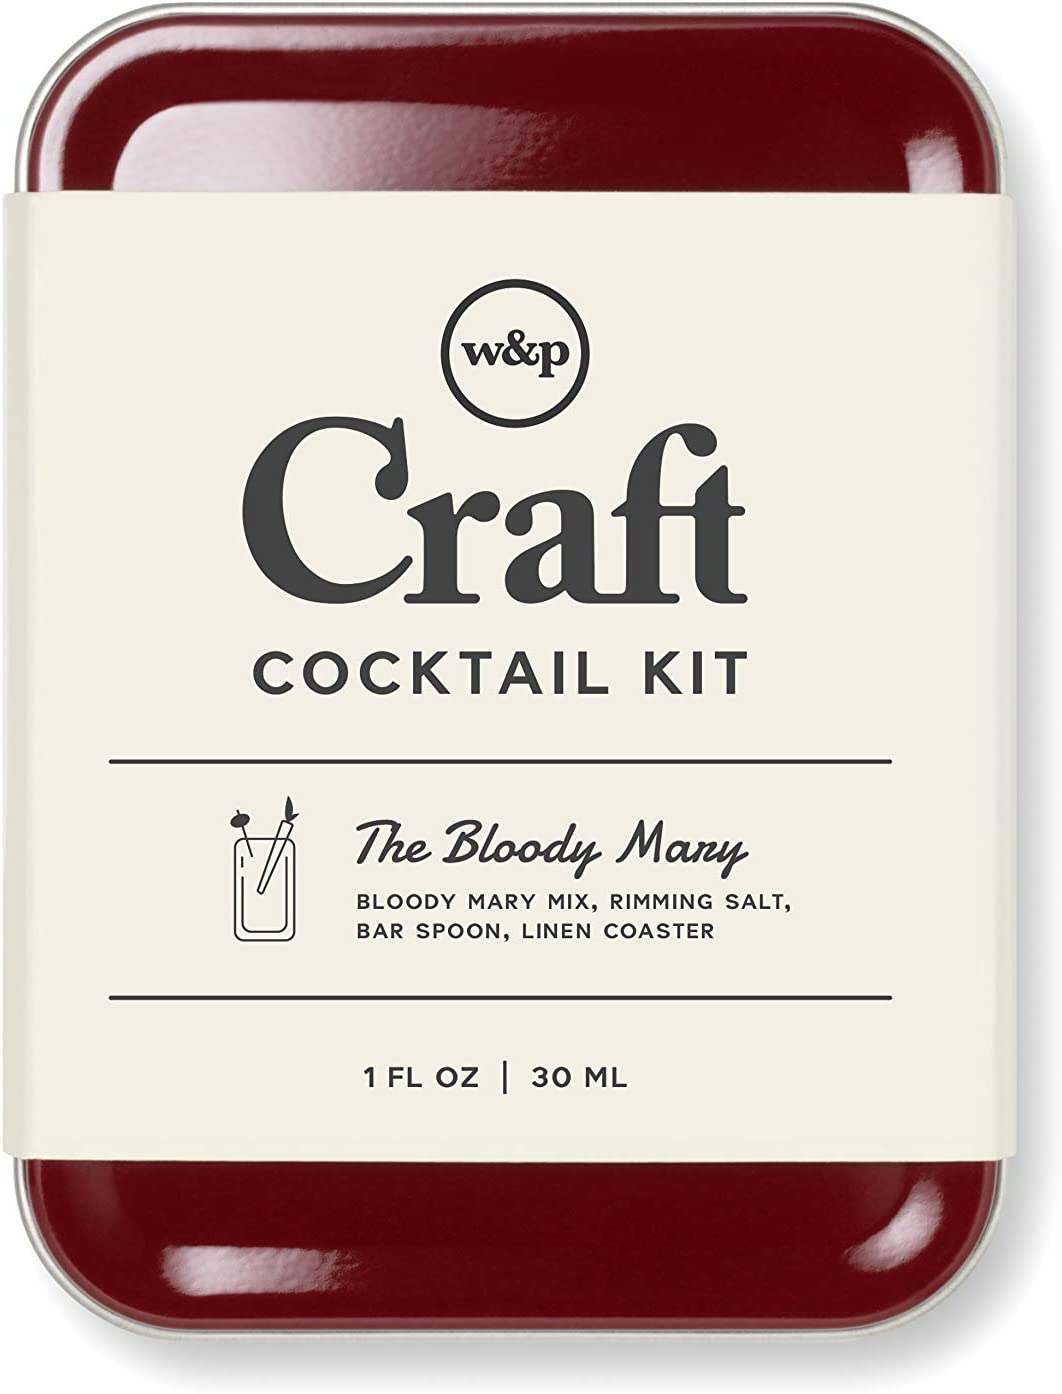 W&P Craft Cocktail Kit, Bloody Mary, Portable Kit for Drinks on the Go, Carry On Cocktail Kit, Makes A Great Gift